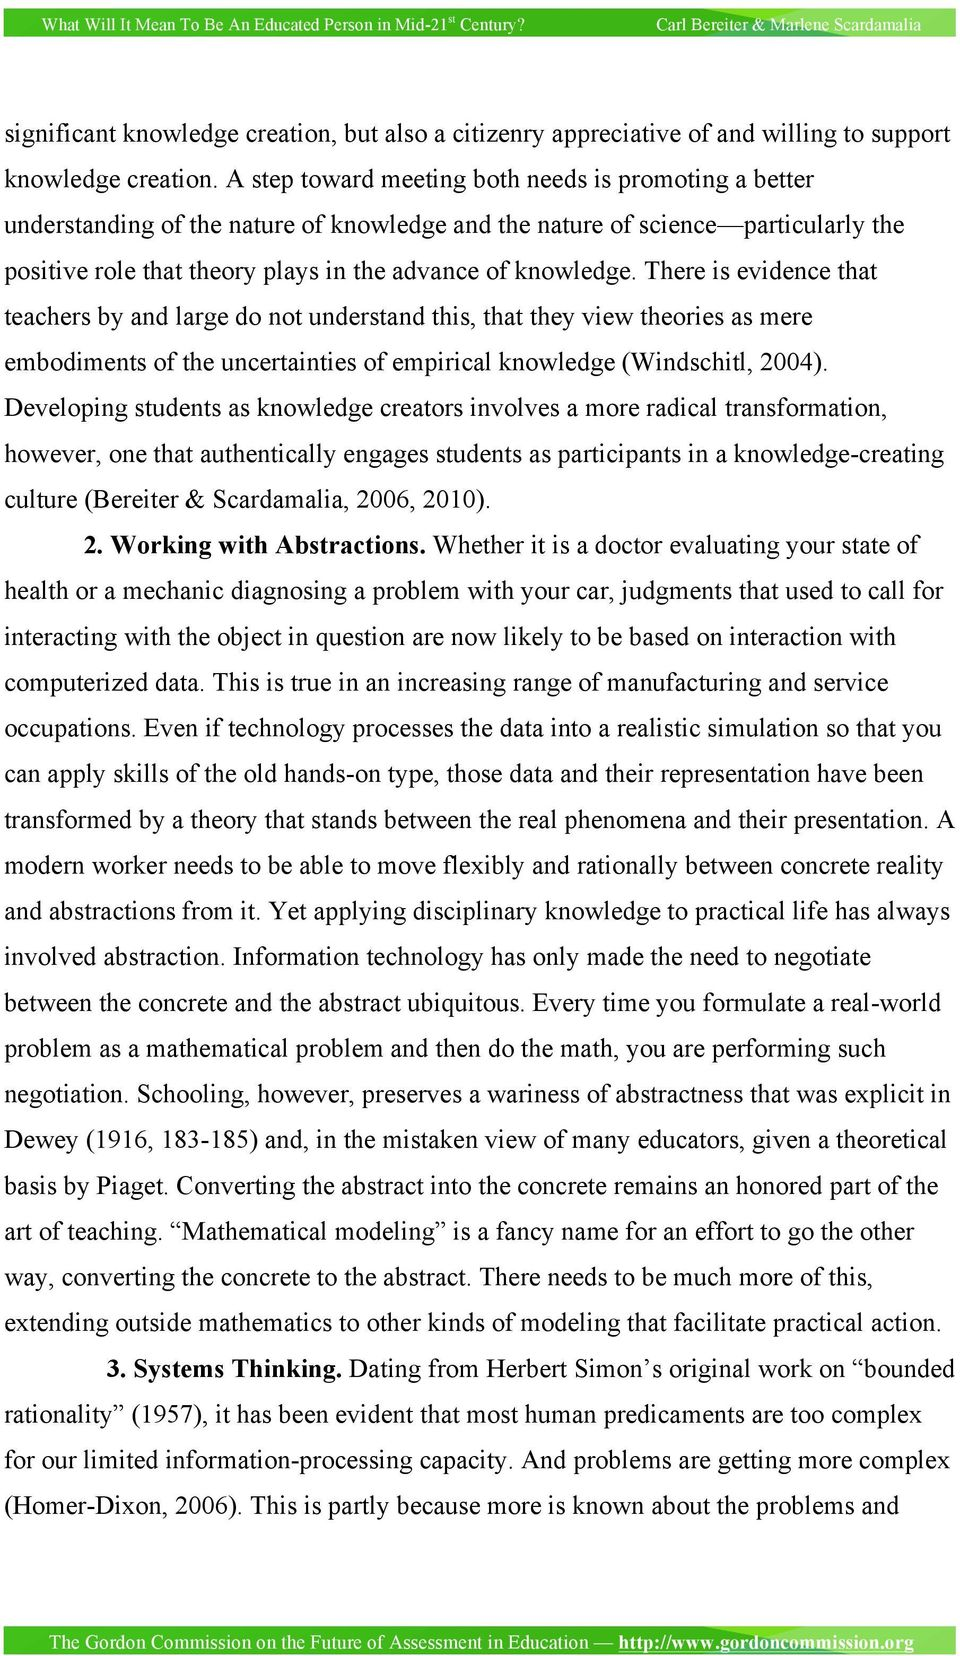 There is evidence that teachers by and large do not understand this, that they view theories as mere embodiments of the uncertainties of empirical knowledge (Windschitl, 2004).